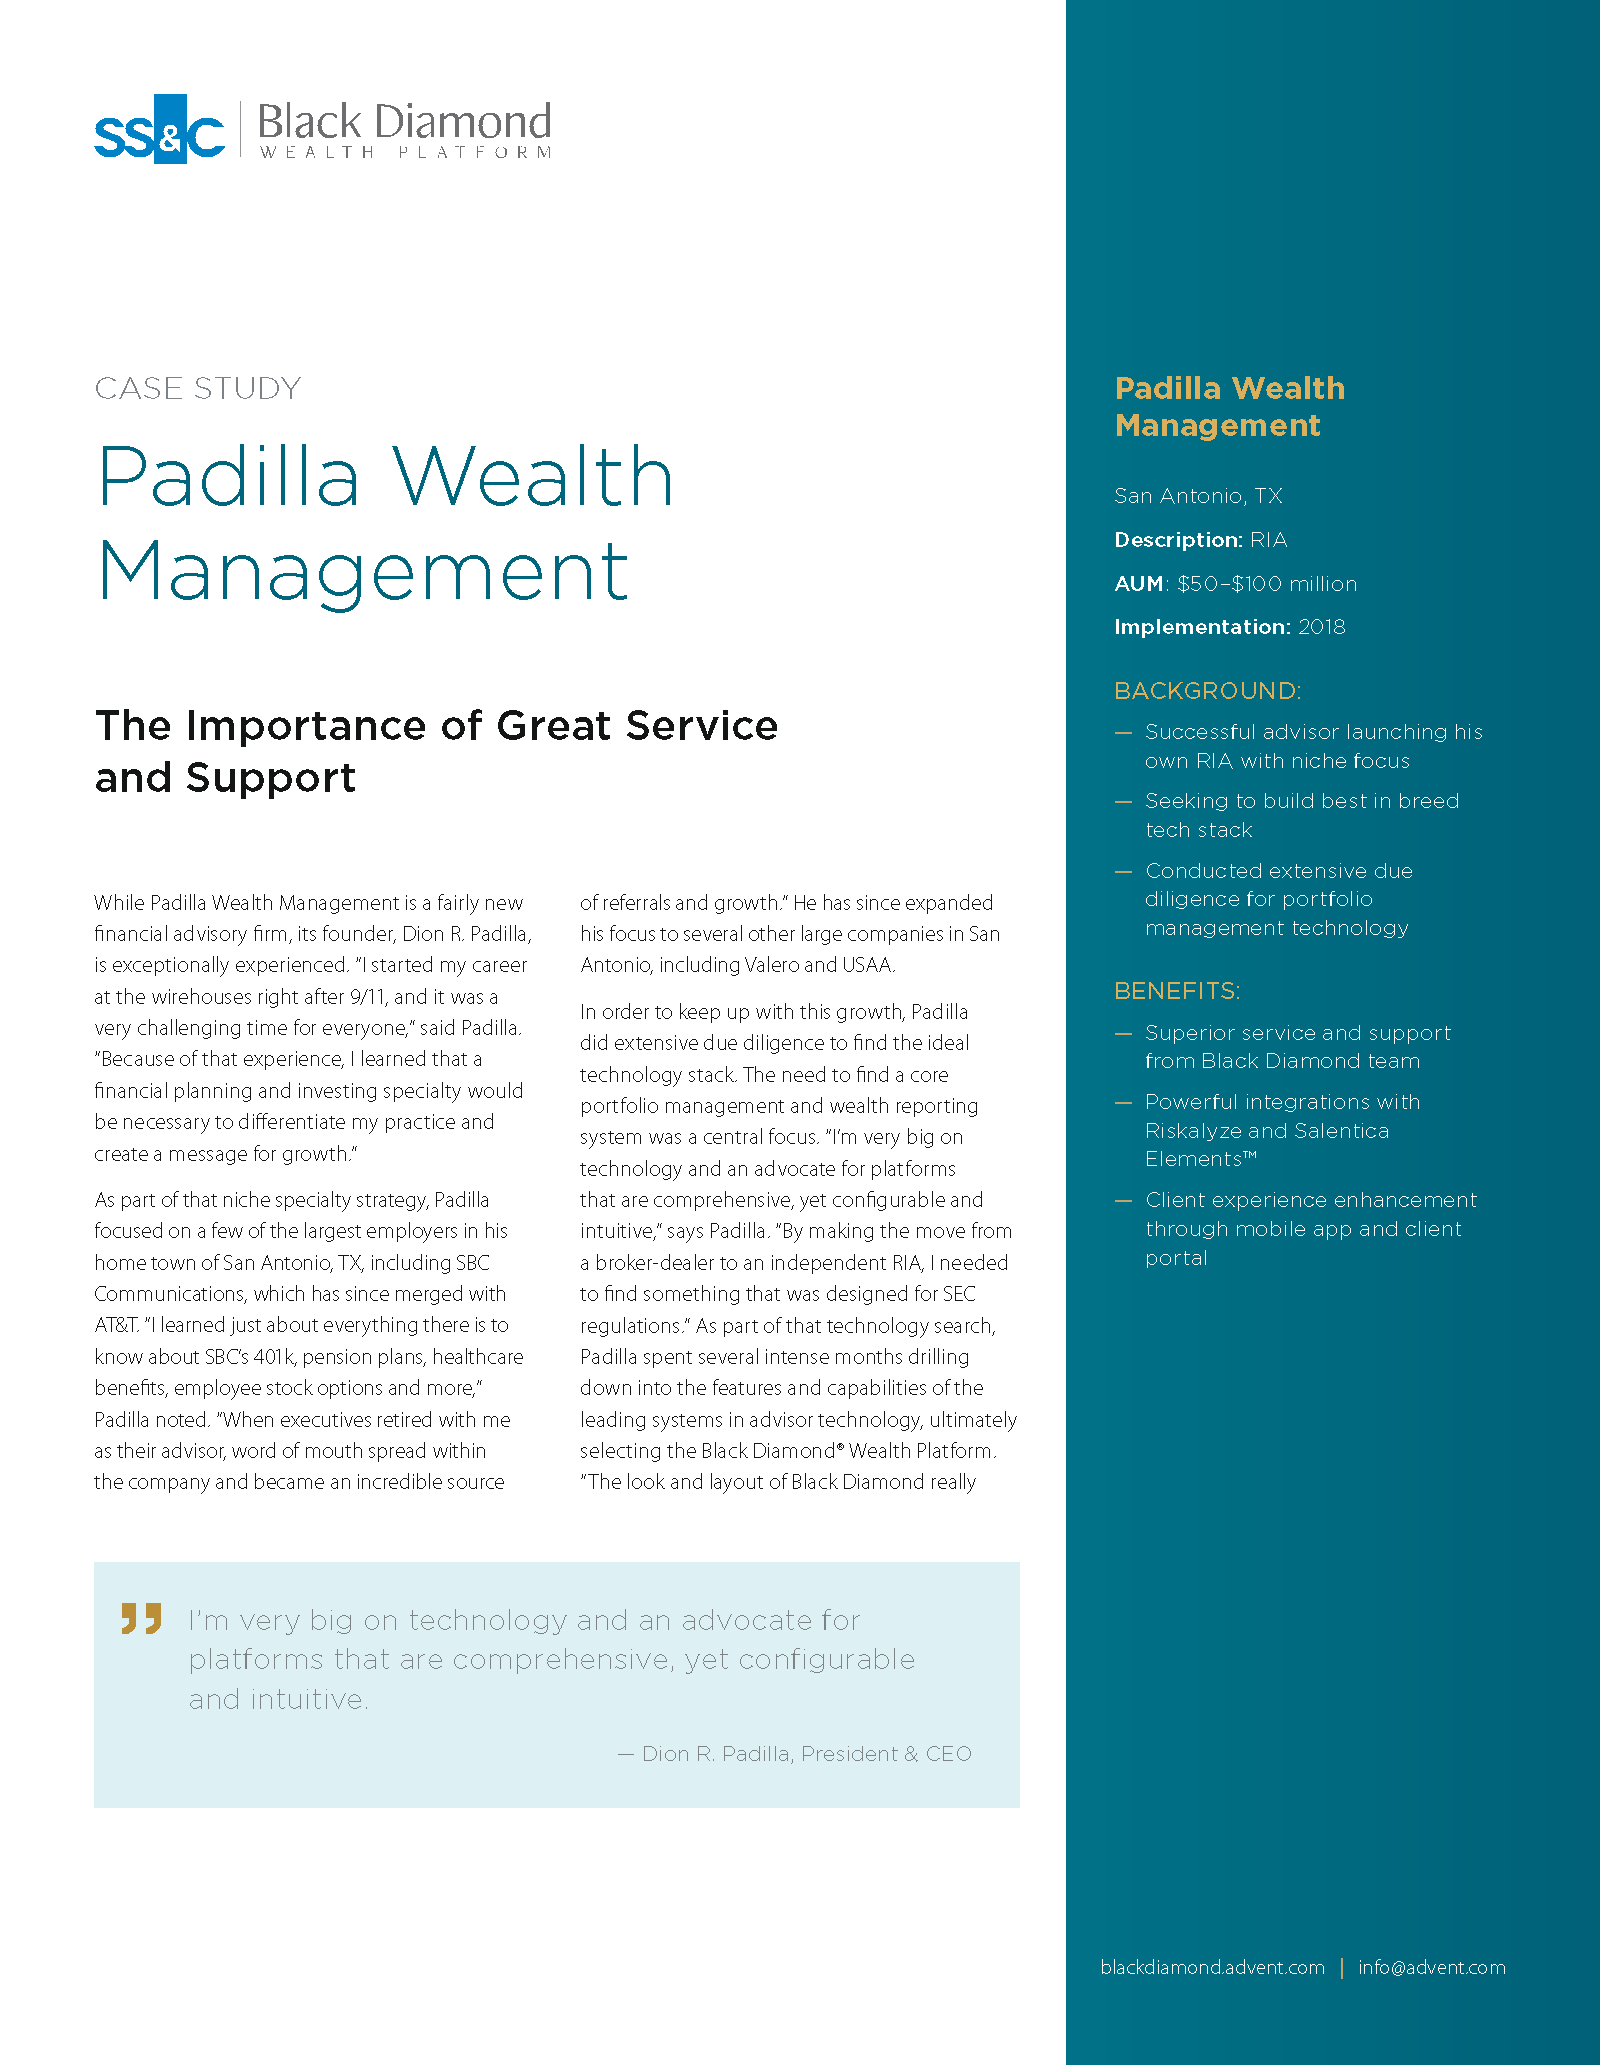 poster image for <p>Padilla Wealth Management</p>